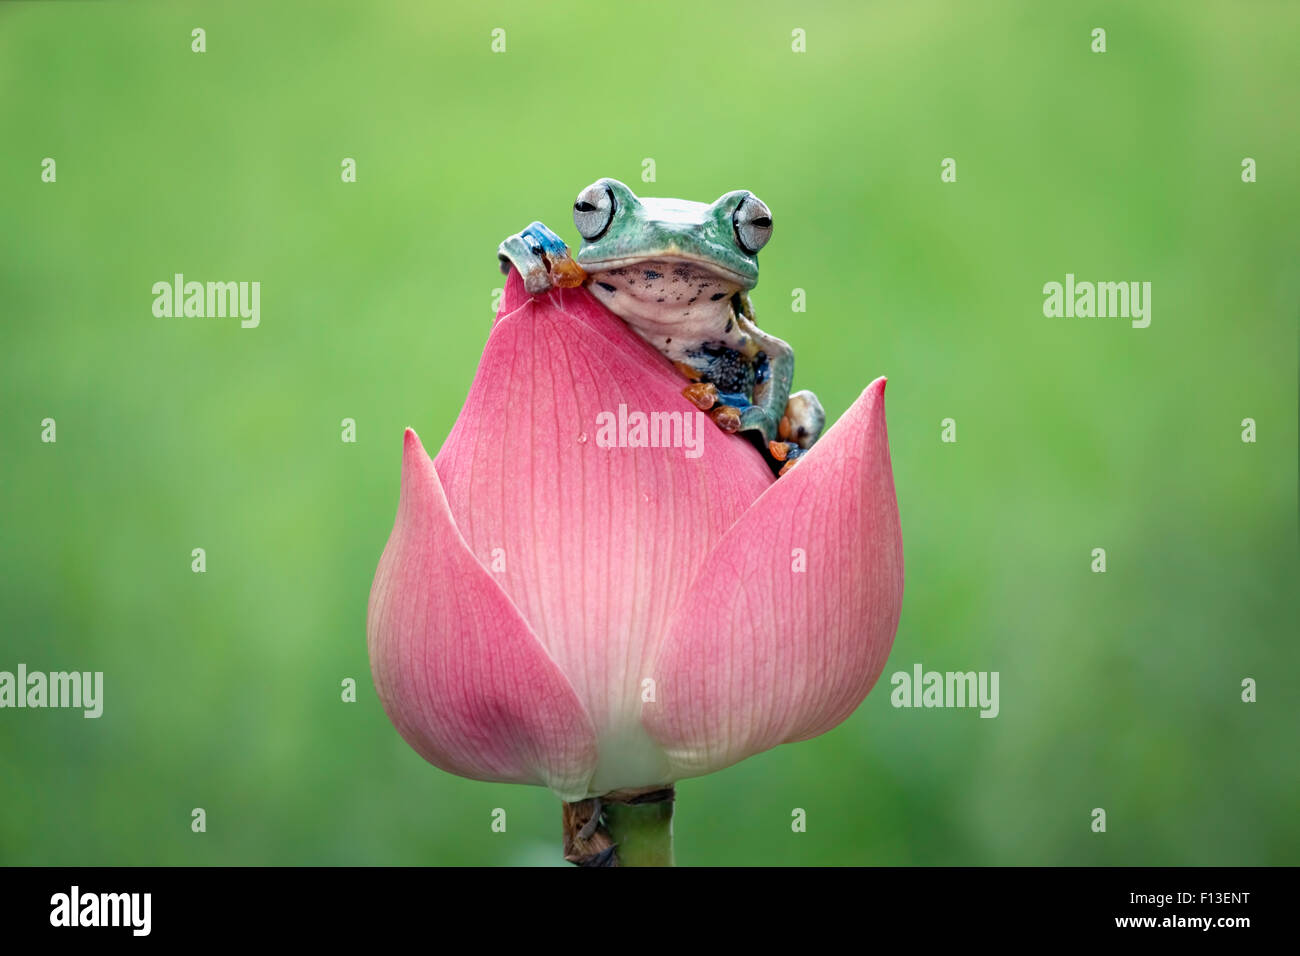 Javan gliding tree frog sitting on a flower - Stock Image